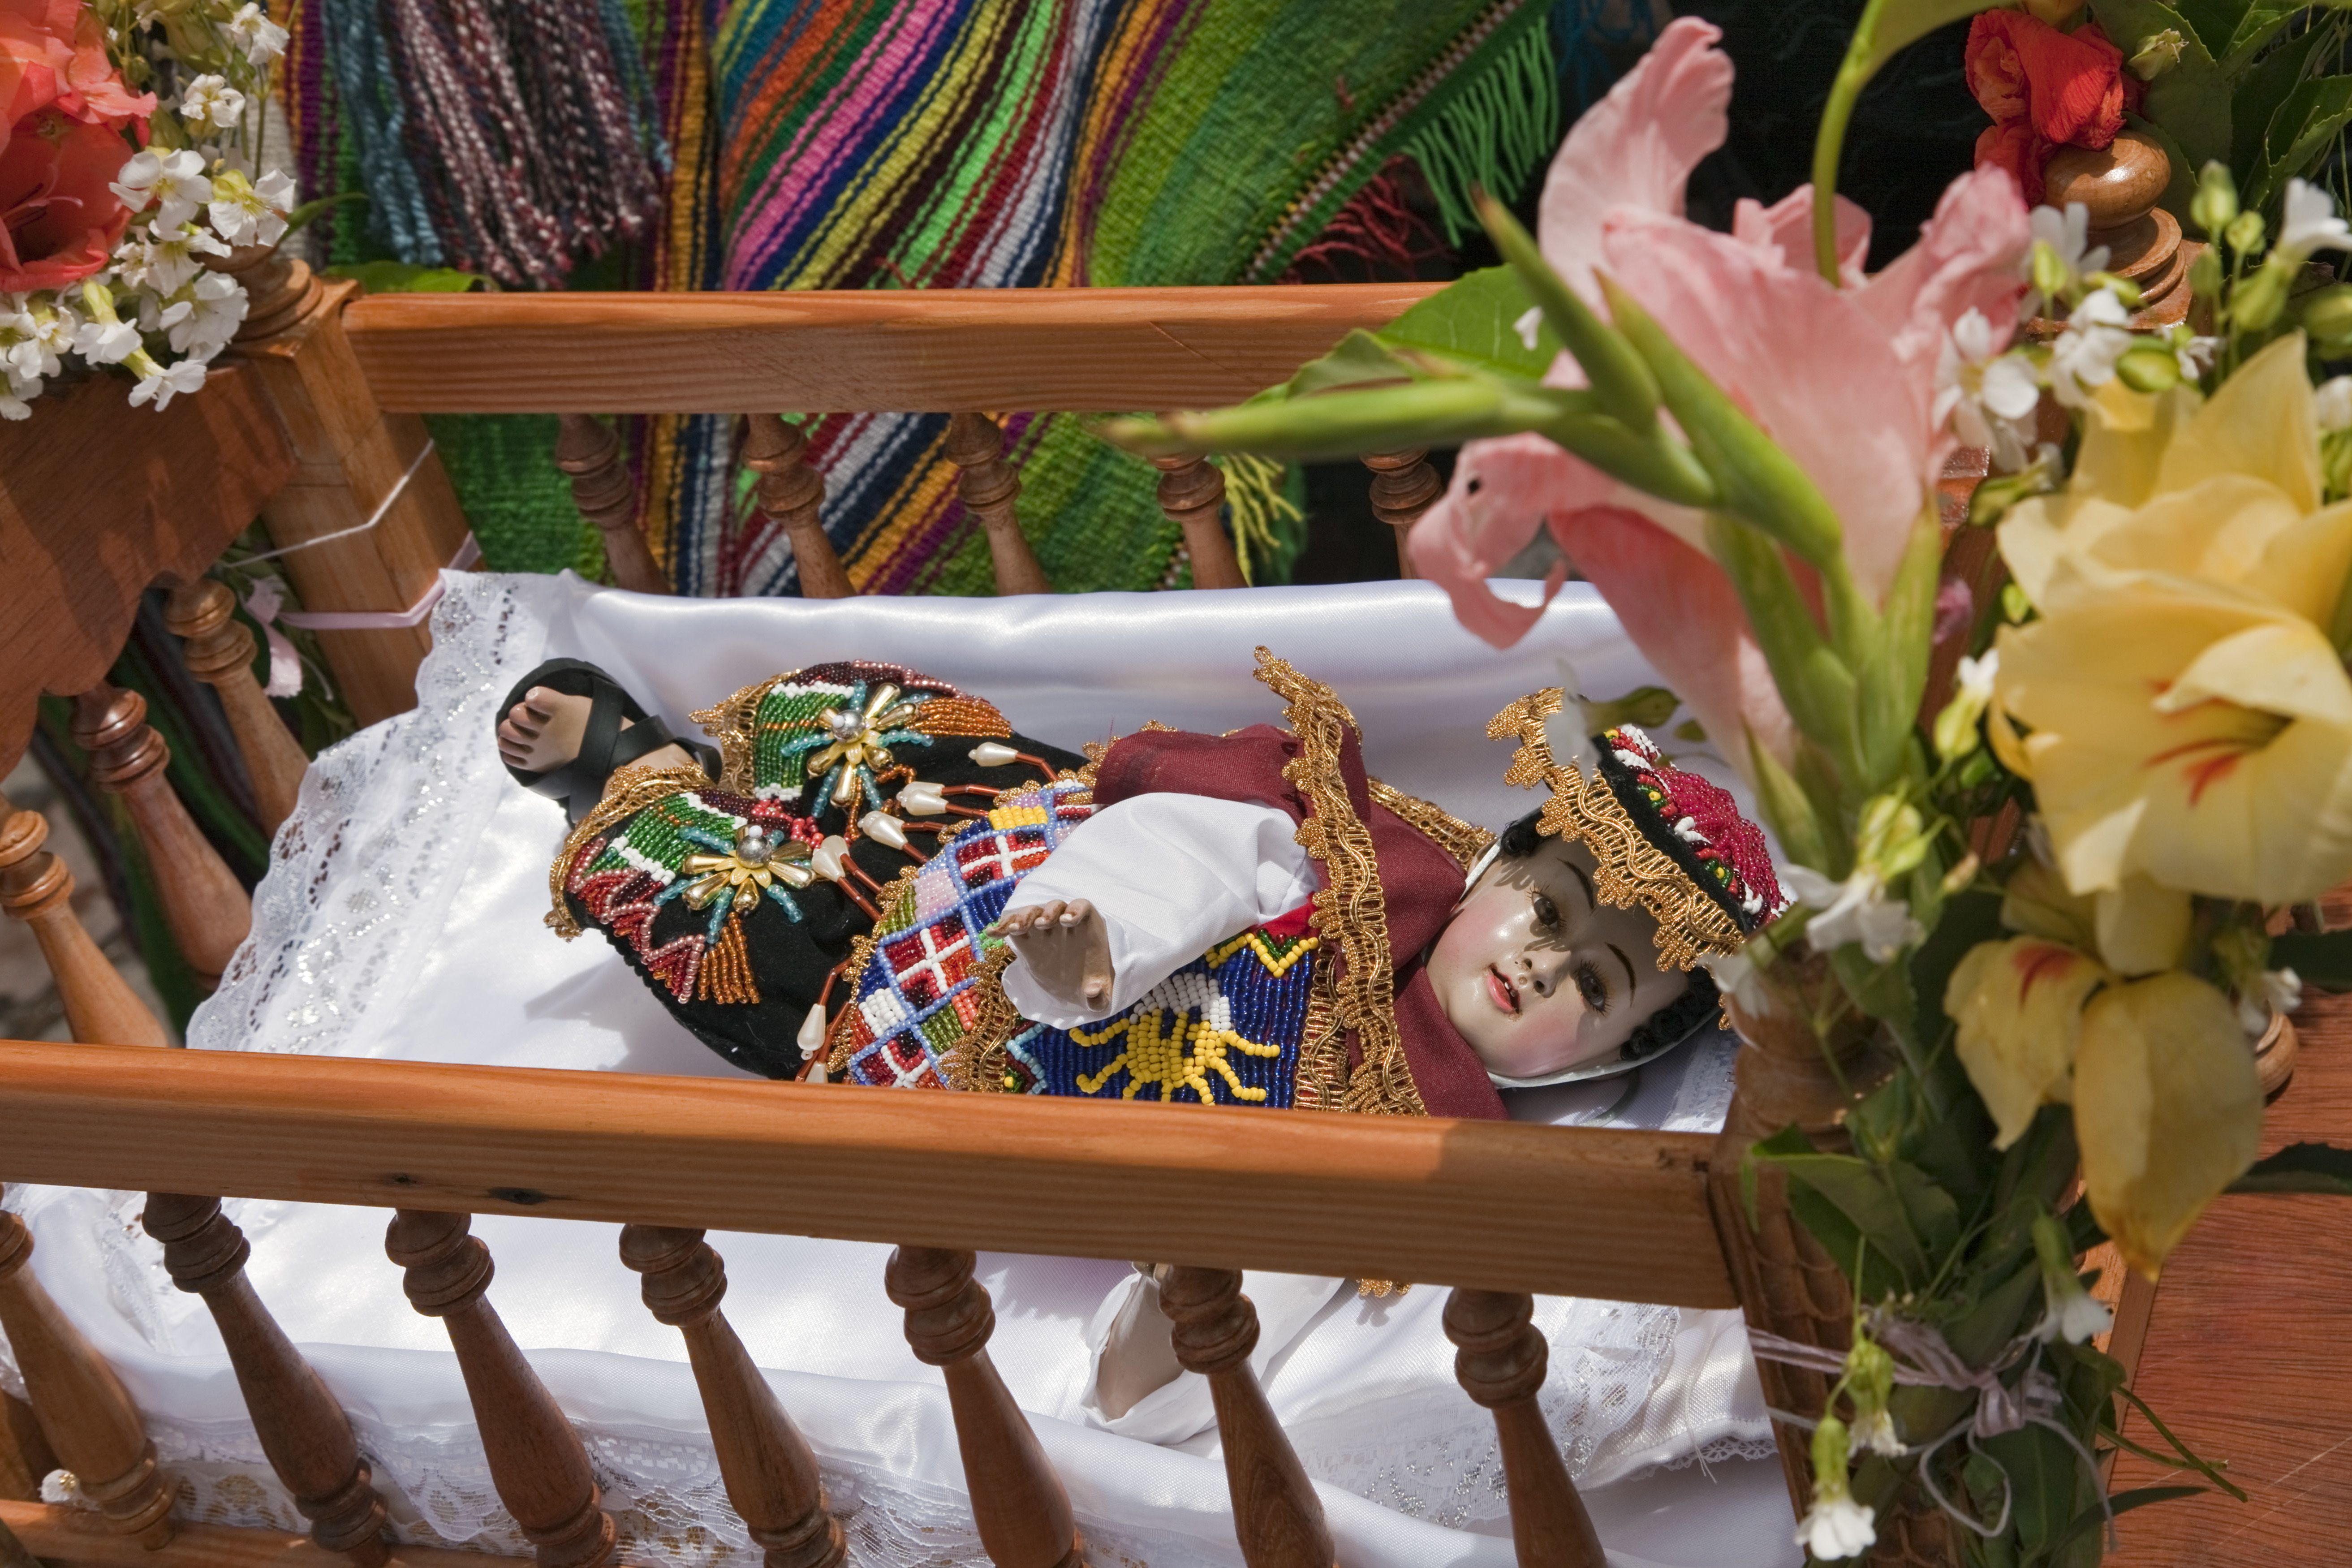 Peru, The Andean version of Baby Jesus, Nino Manuelito, is carried in cot by dancers during Christmas Day celebrations